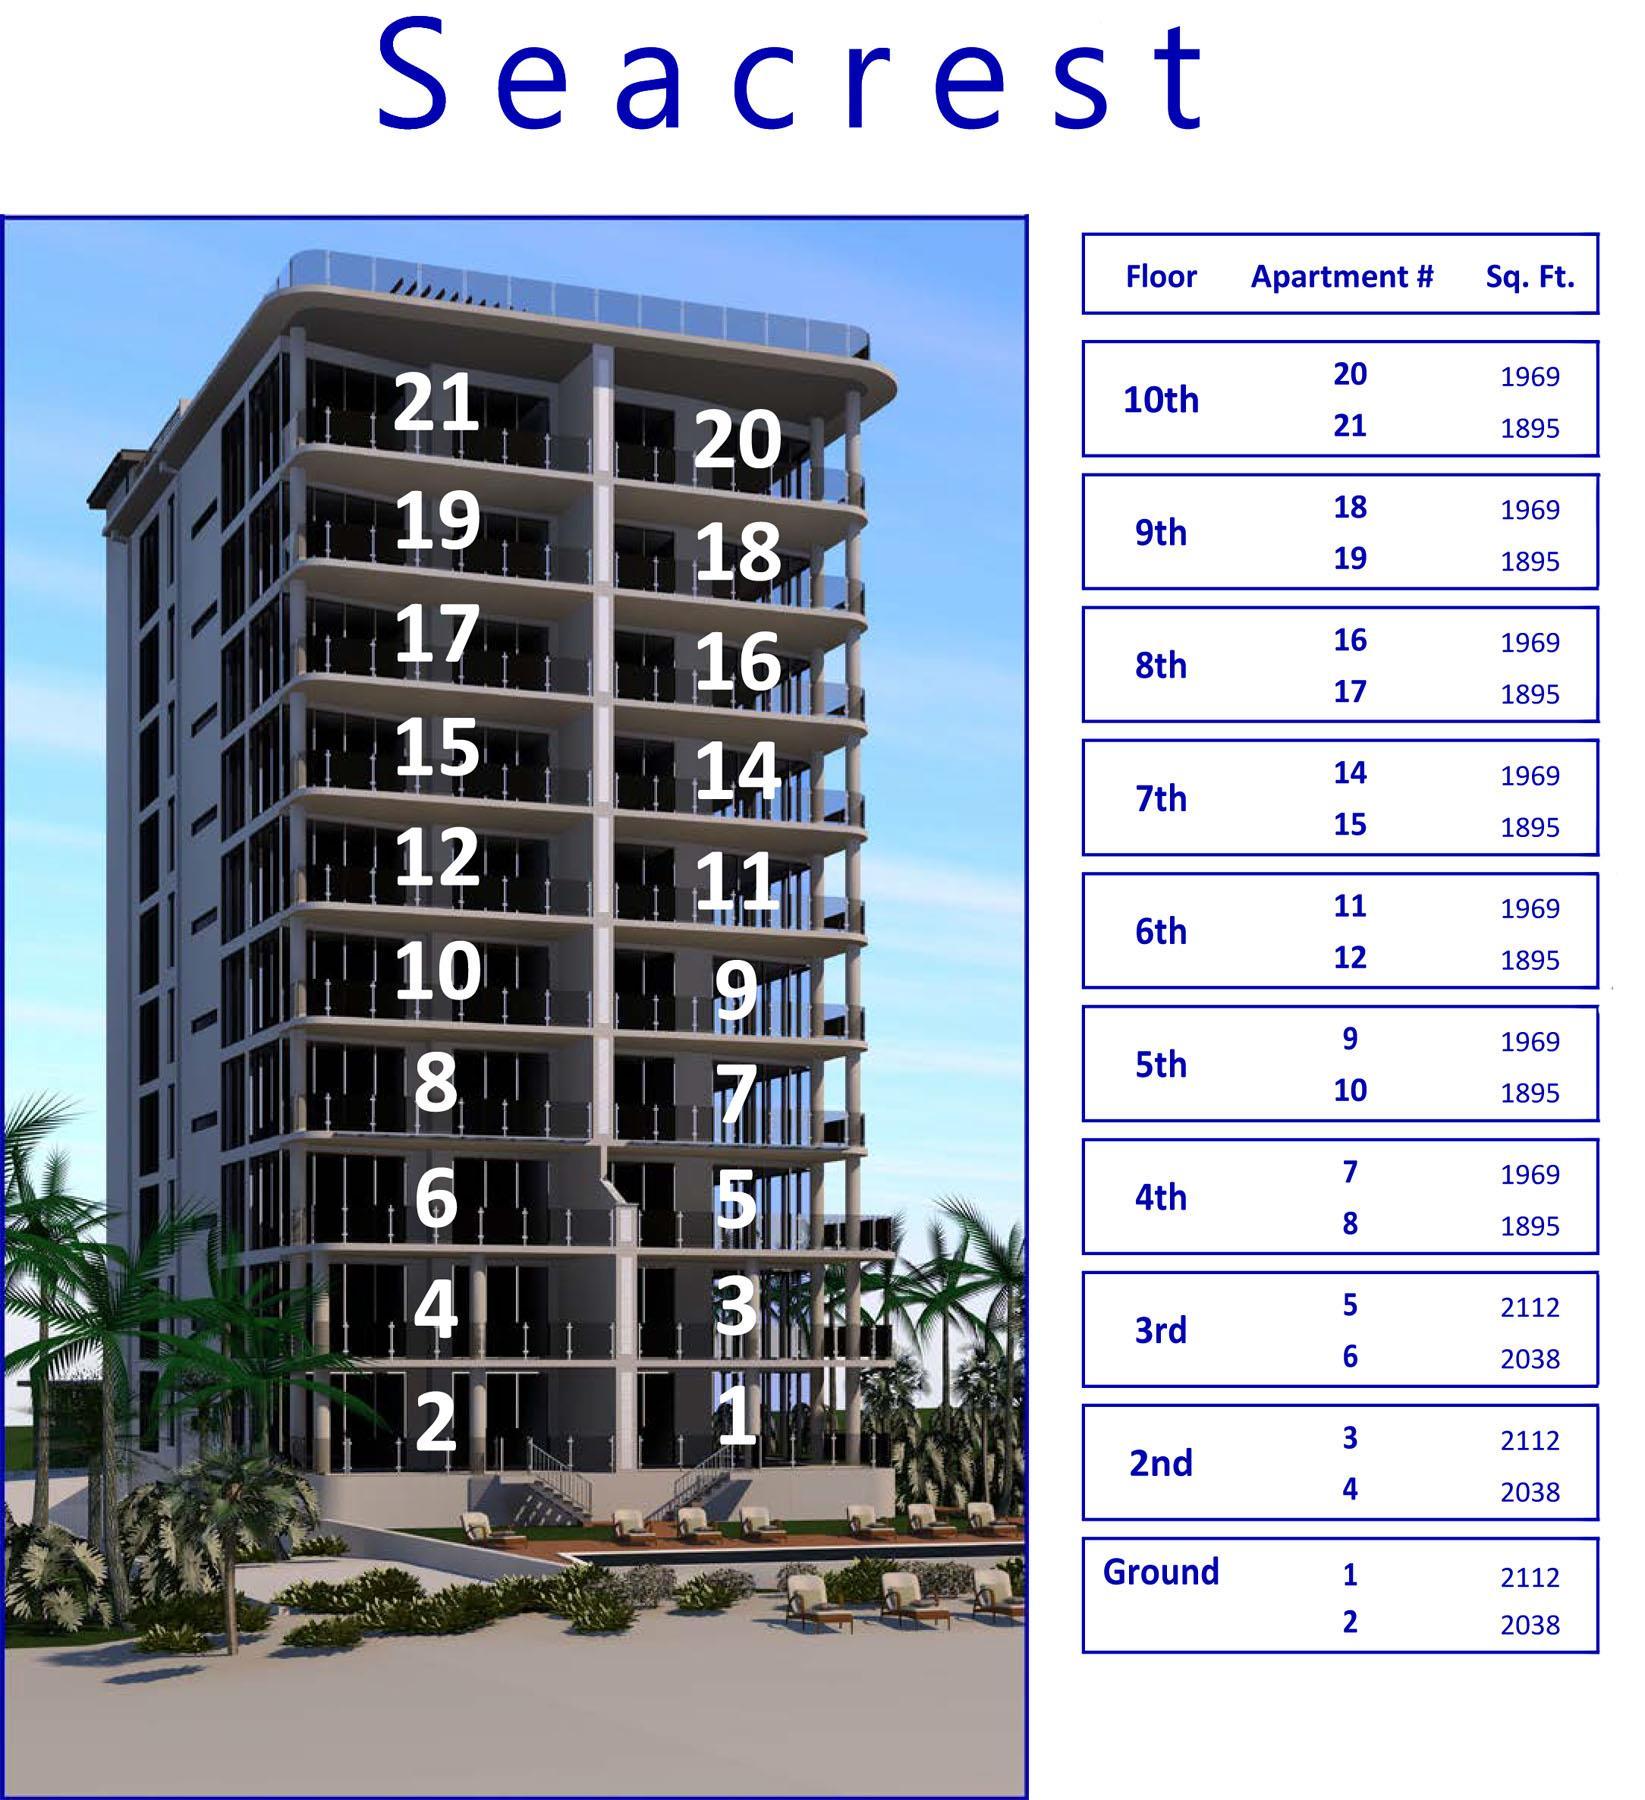 Drawing of Seacrest condos, Seven Mile Beach showing apartment numbers